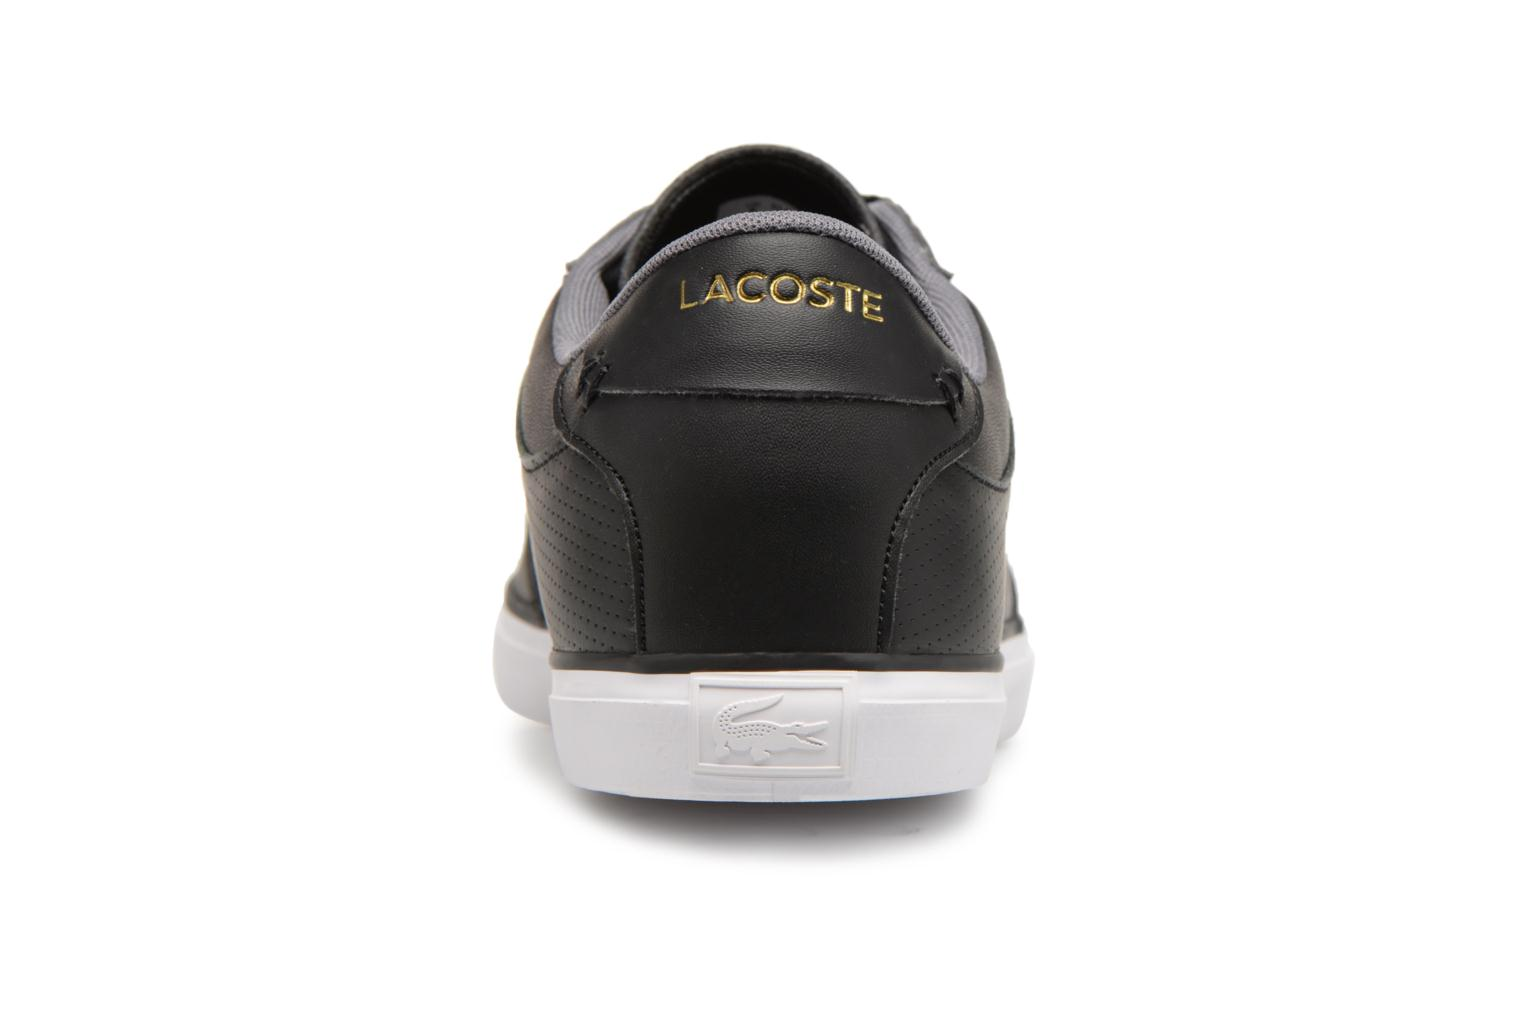 1 Blk 318 Gry Lacoste Court master dk xqfOOa